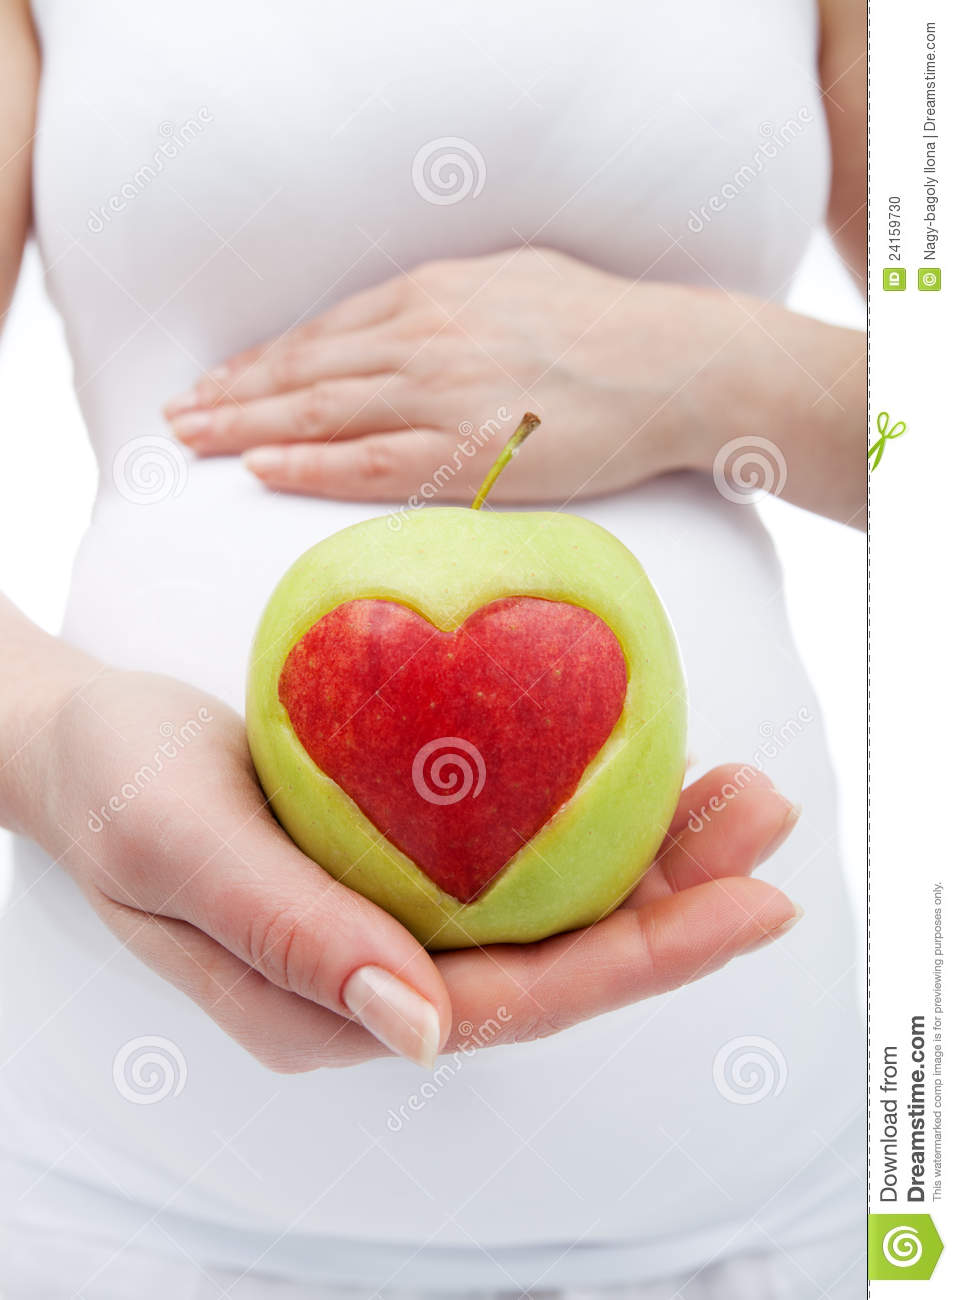 Healthy Nutrition During Pregnancy Stock Photo